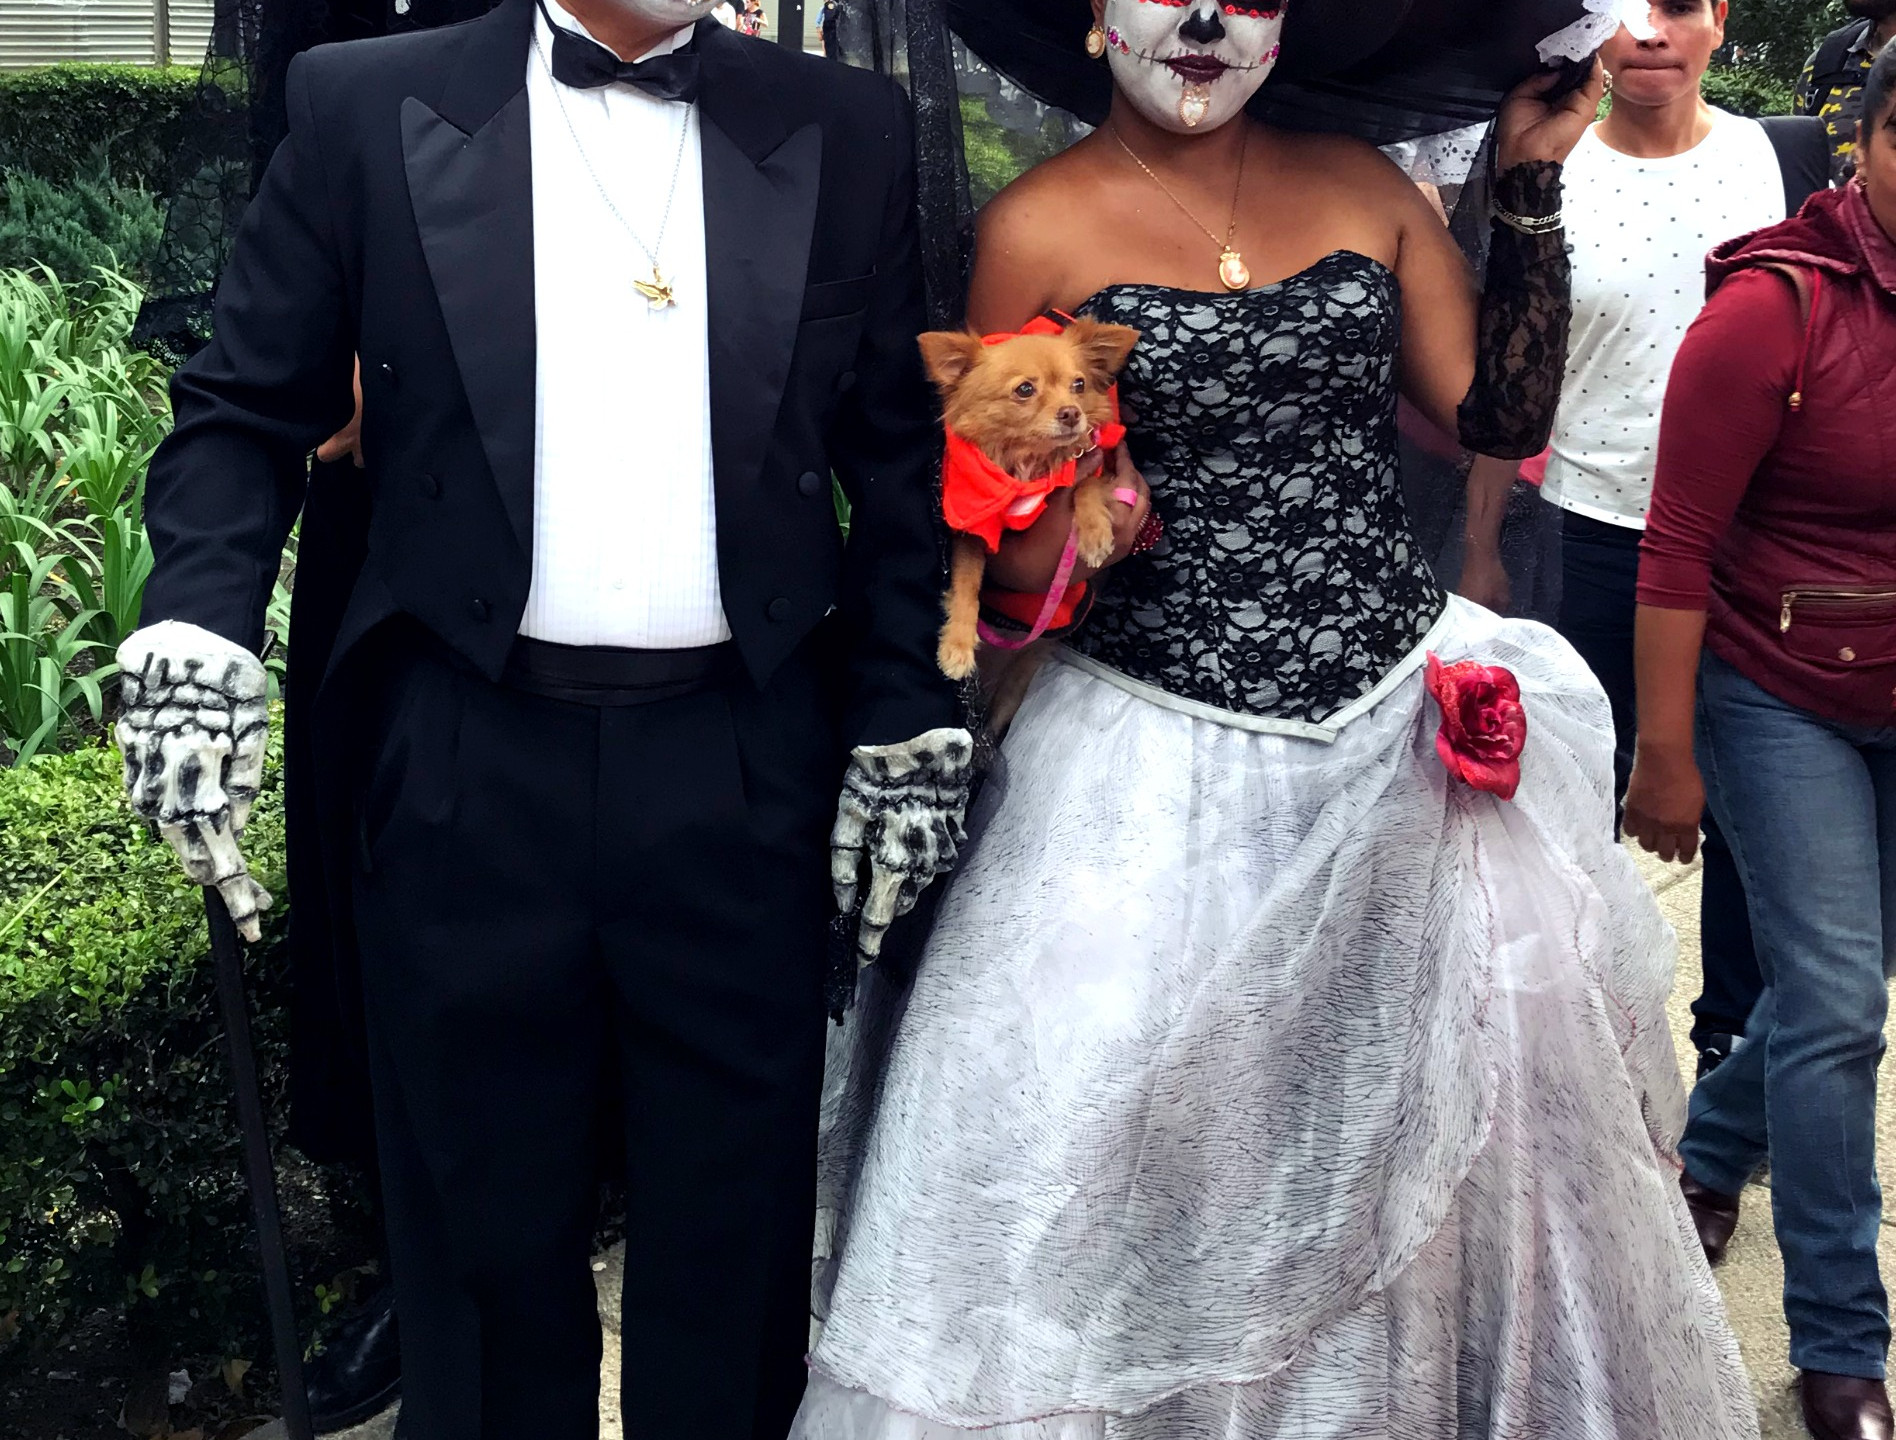 A couple in Catrina face paint and cosumes.